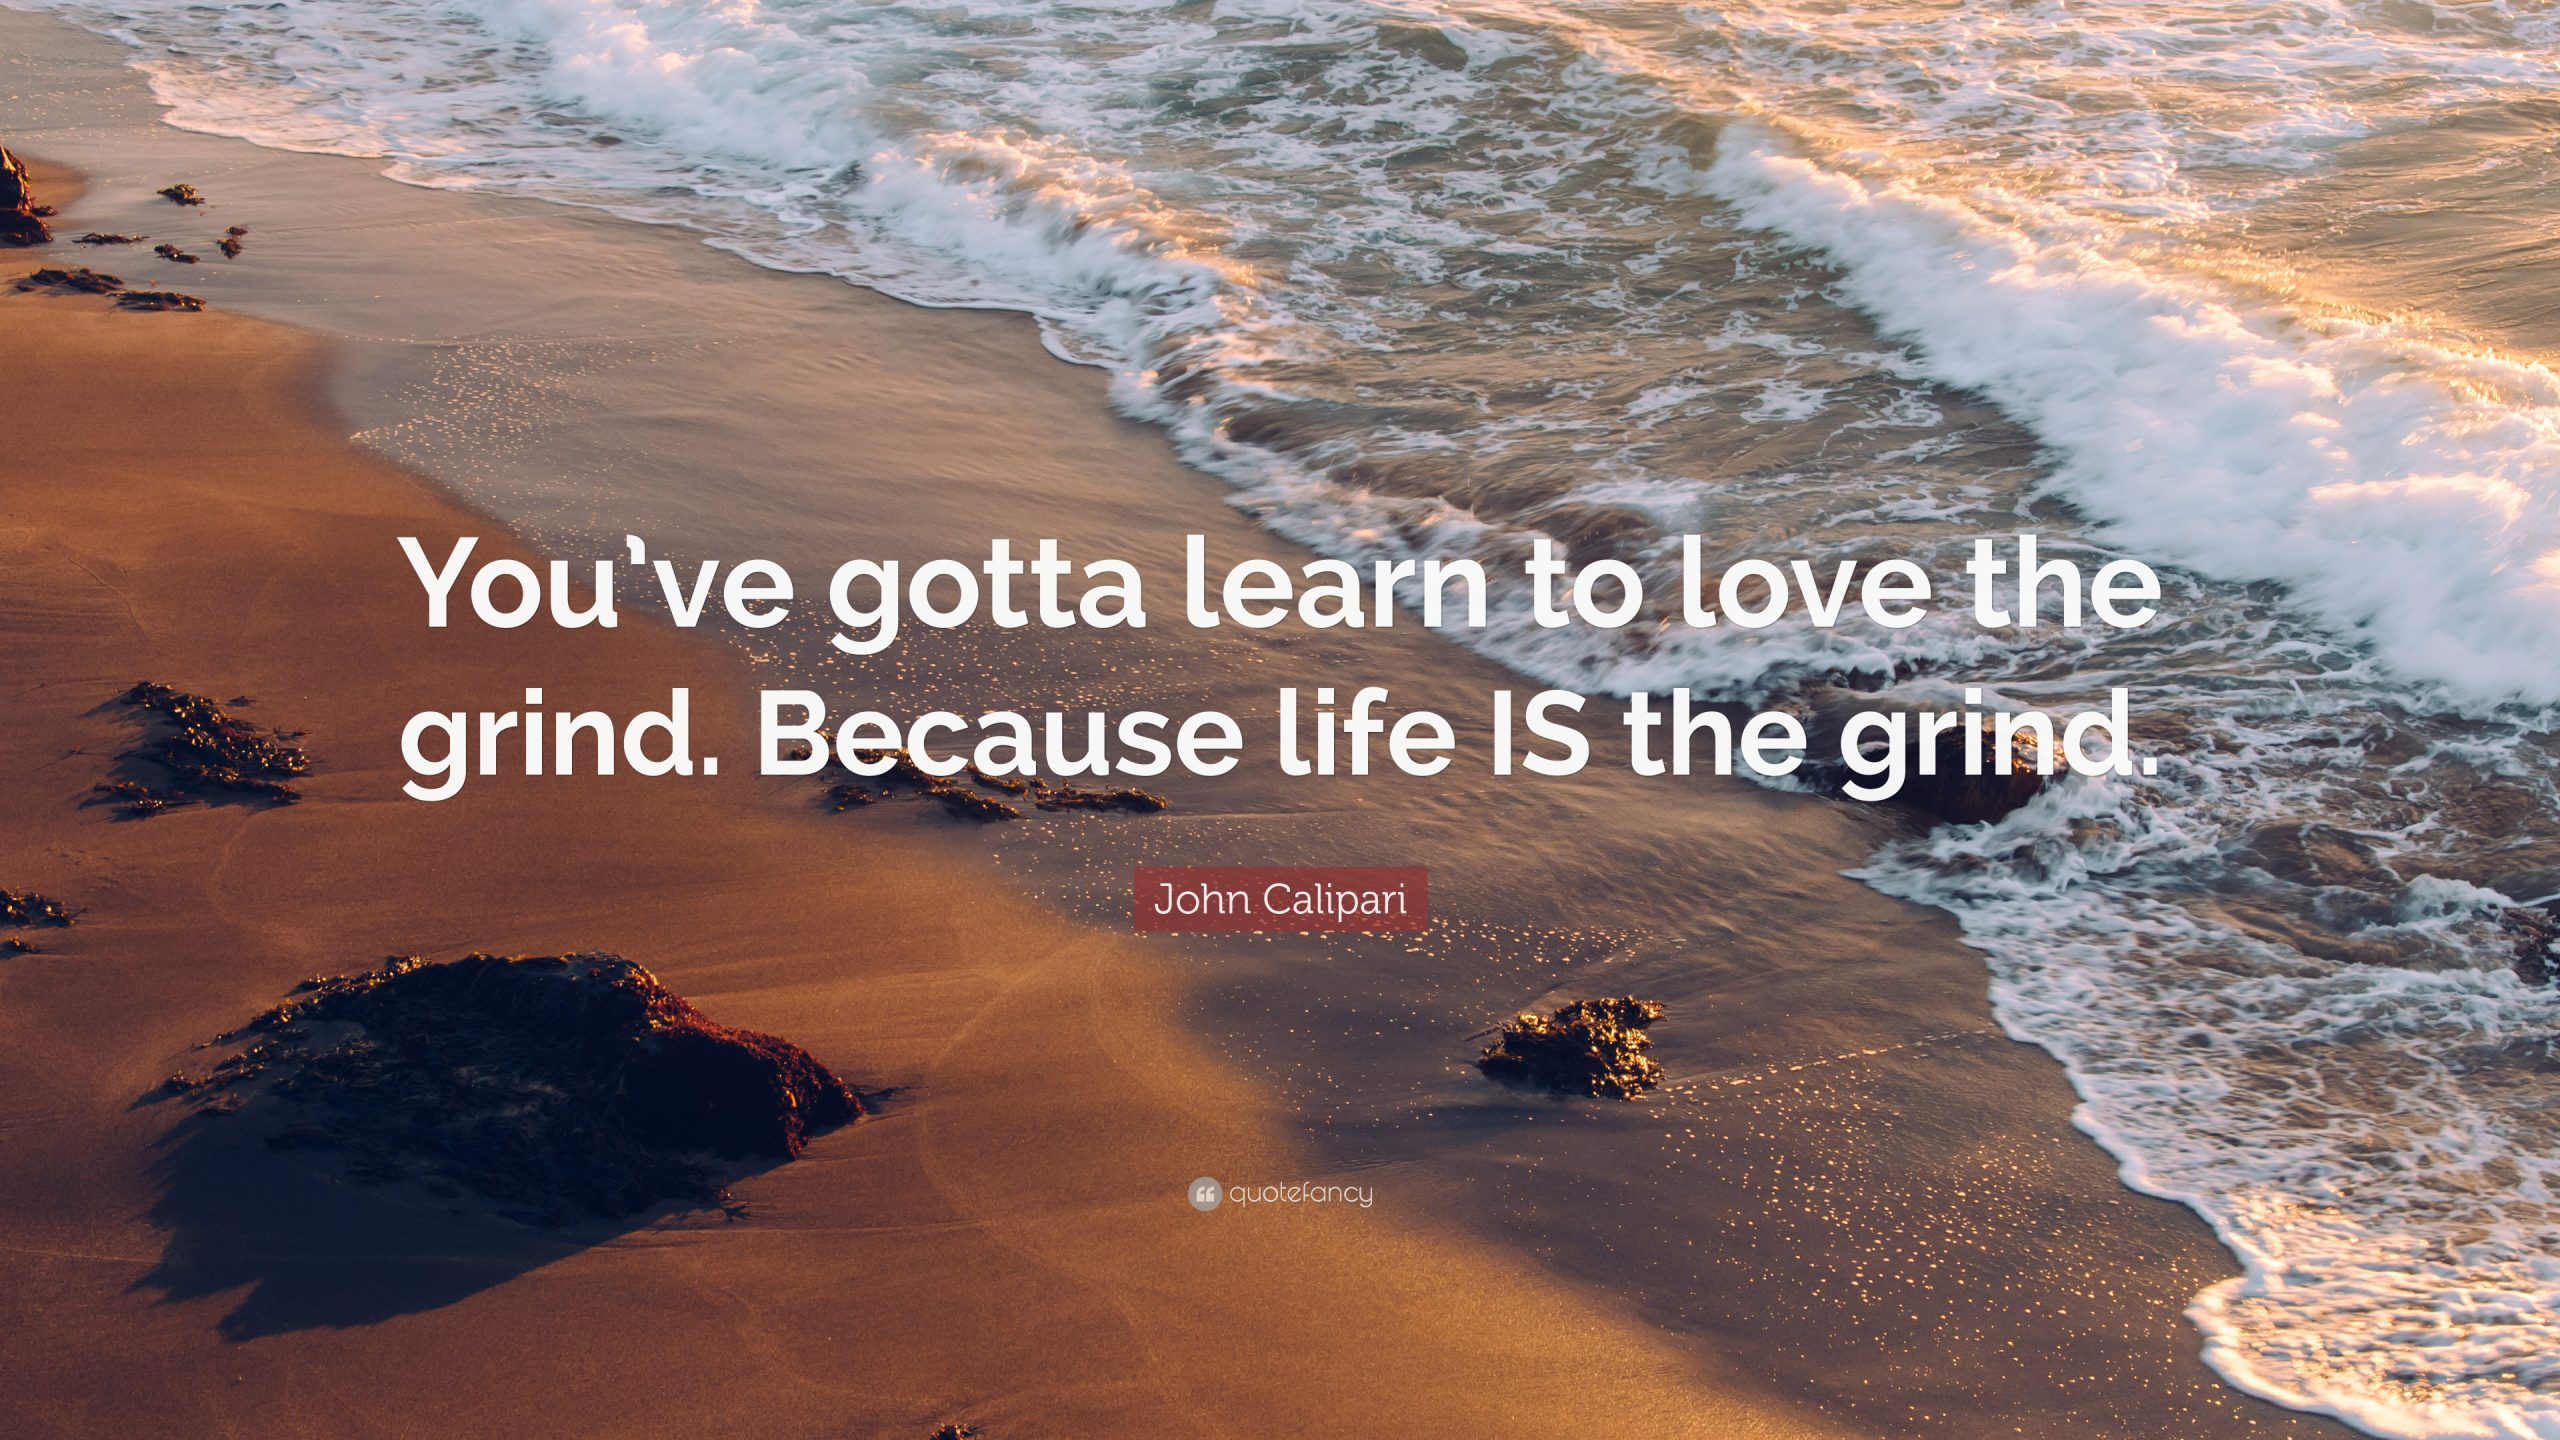 7-12-21-John-Calipari-Quote-You-ve-gotta-learn-to-love-the-grind-Because